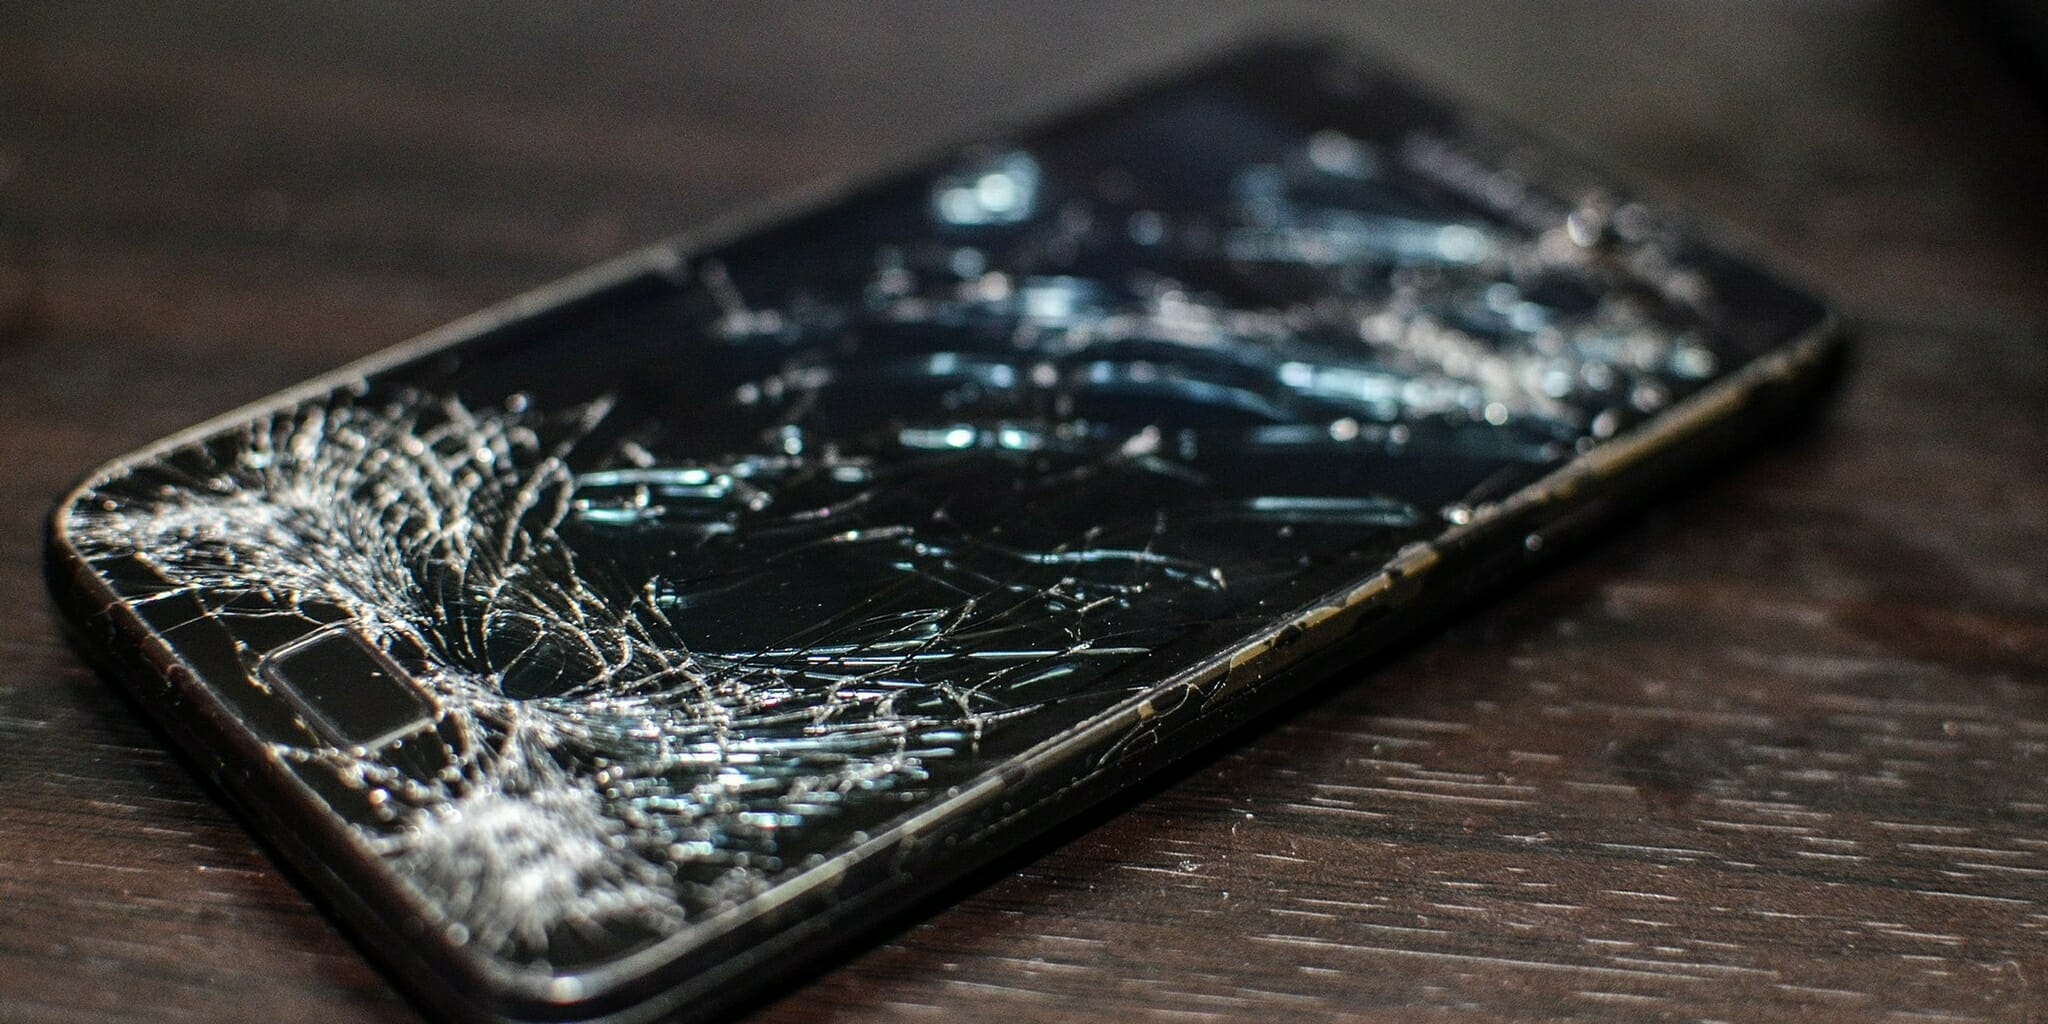 A shattered screen of a Samsung Galaxy S2